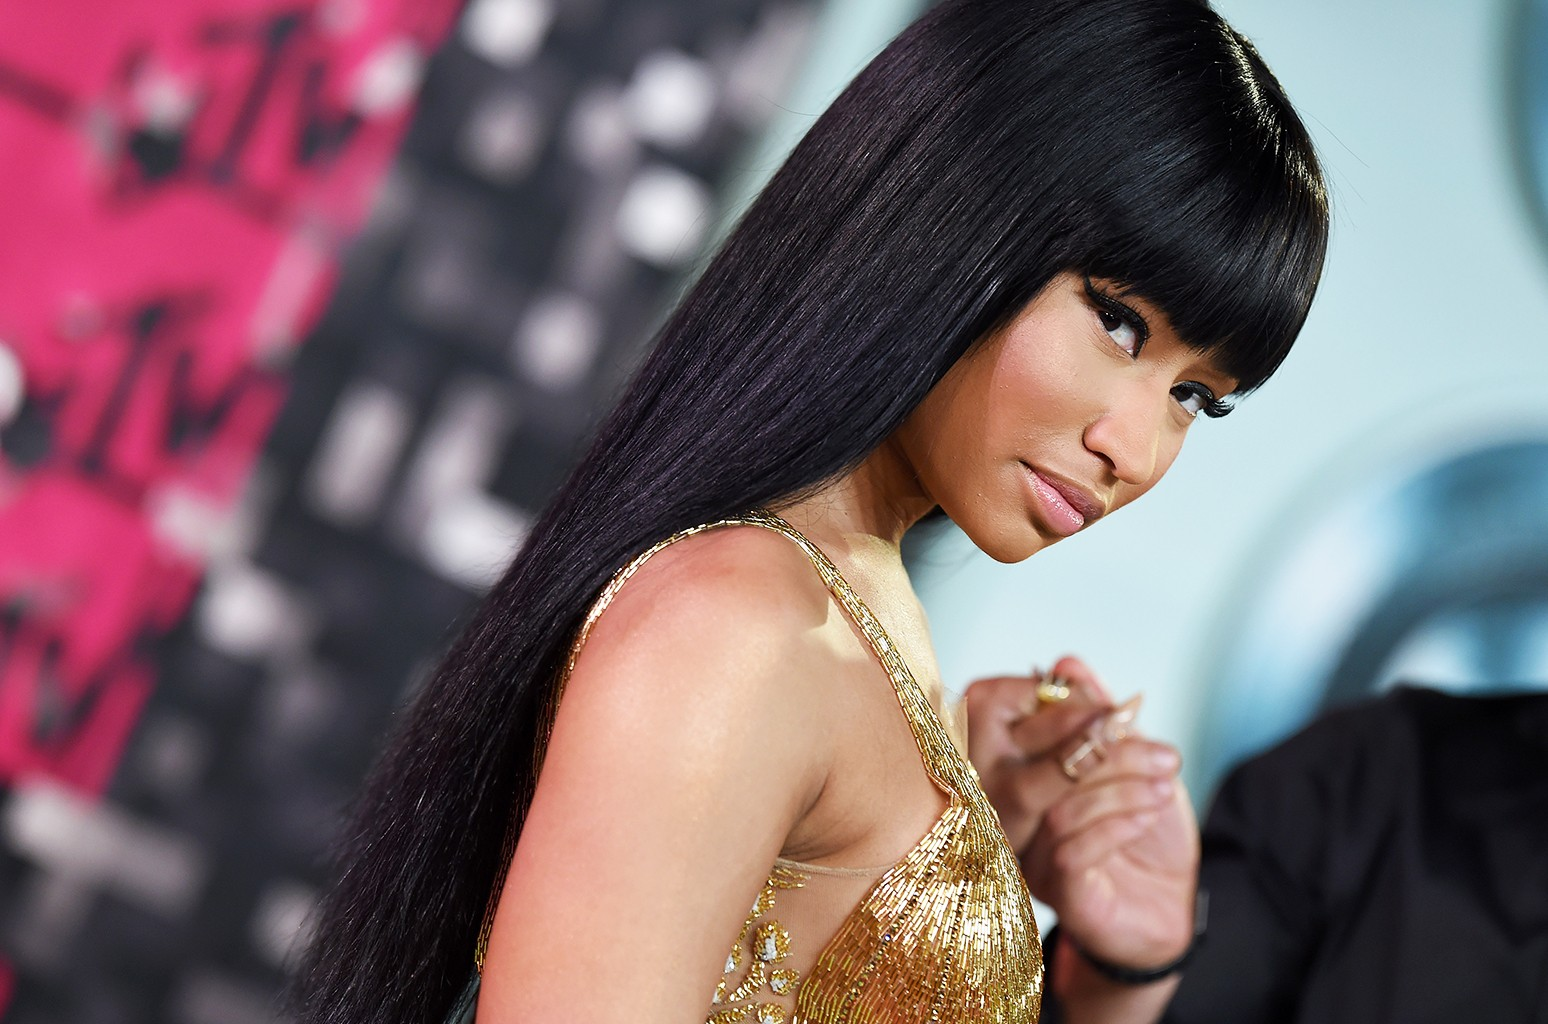 Nicki Minaj arrives at the 2015 MTV Video Music Awards at Microsoft Theater on Aug. 30, 2015 in Los Angeles.